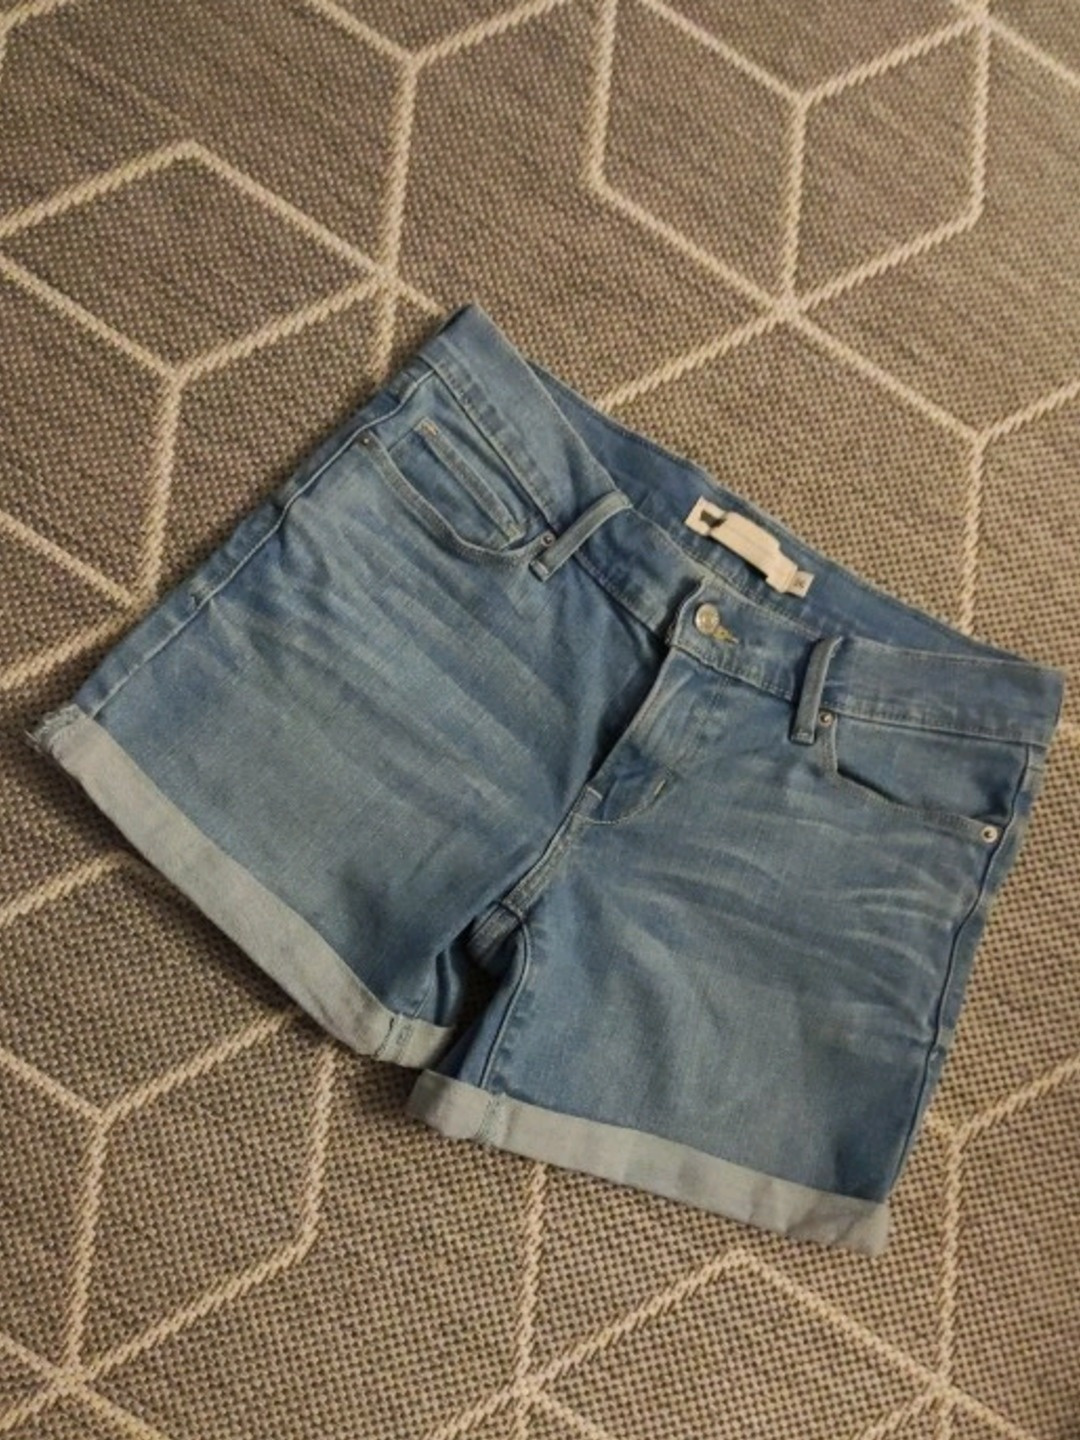 Women's shorts - LEVI'S photo 1